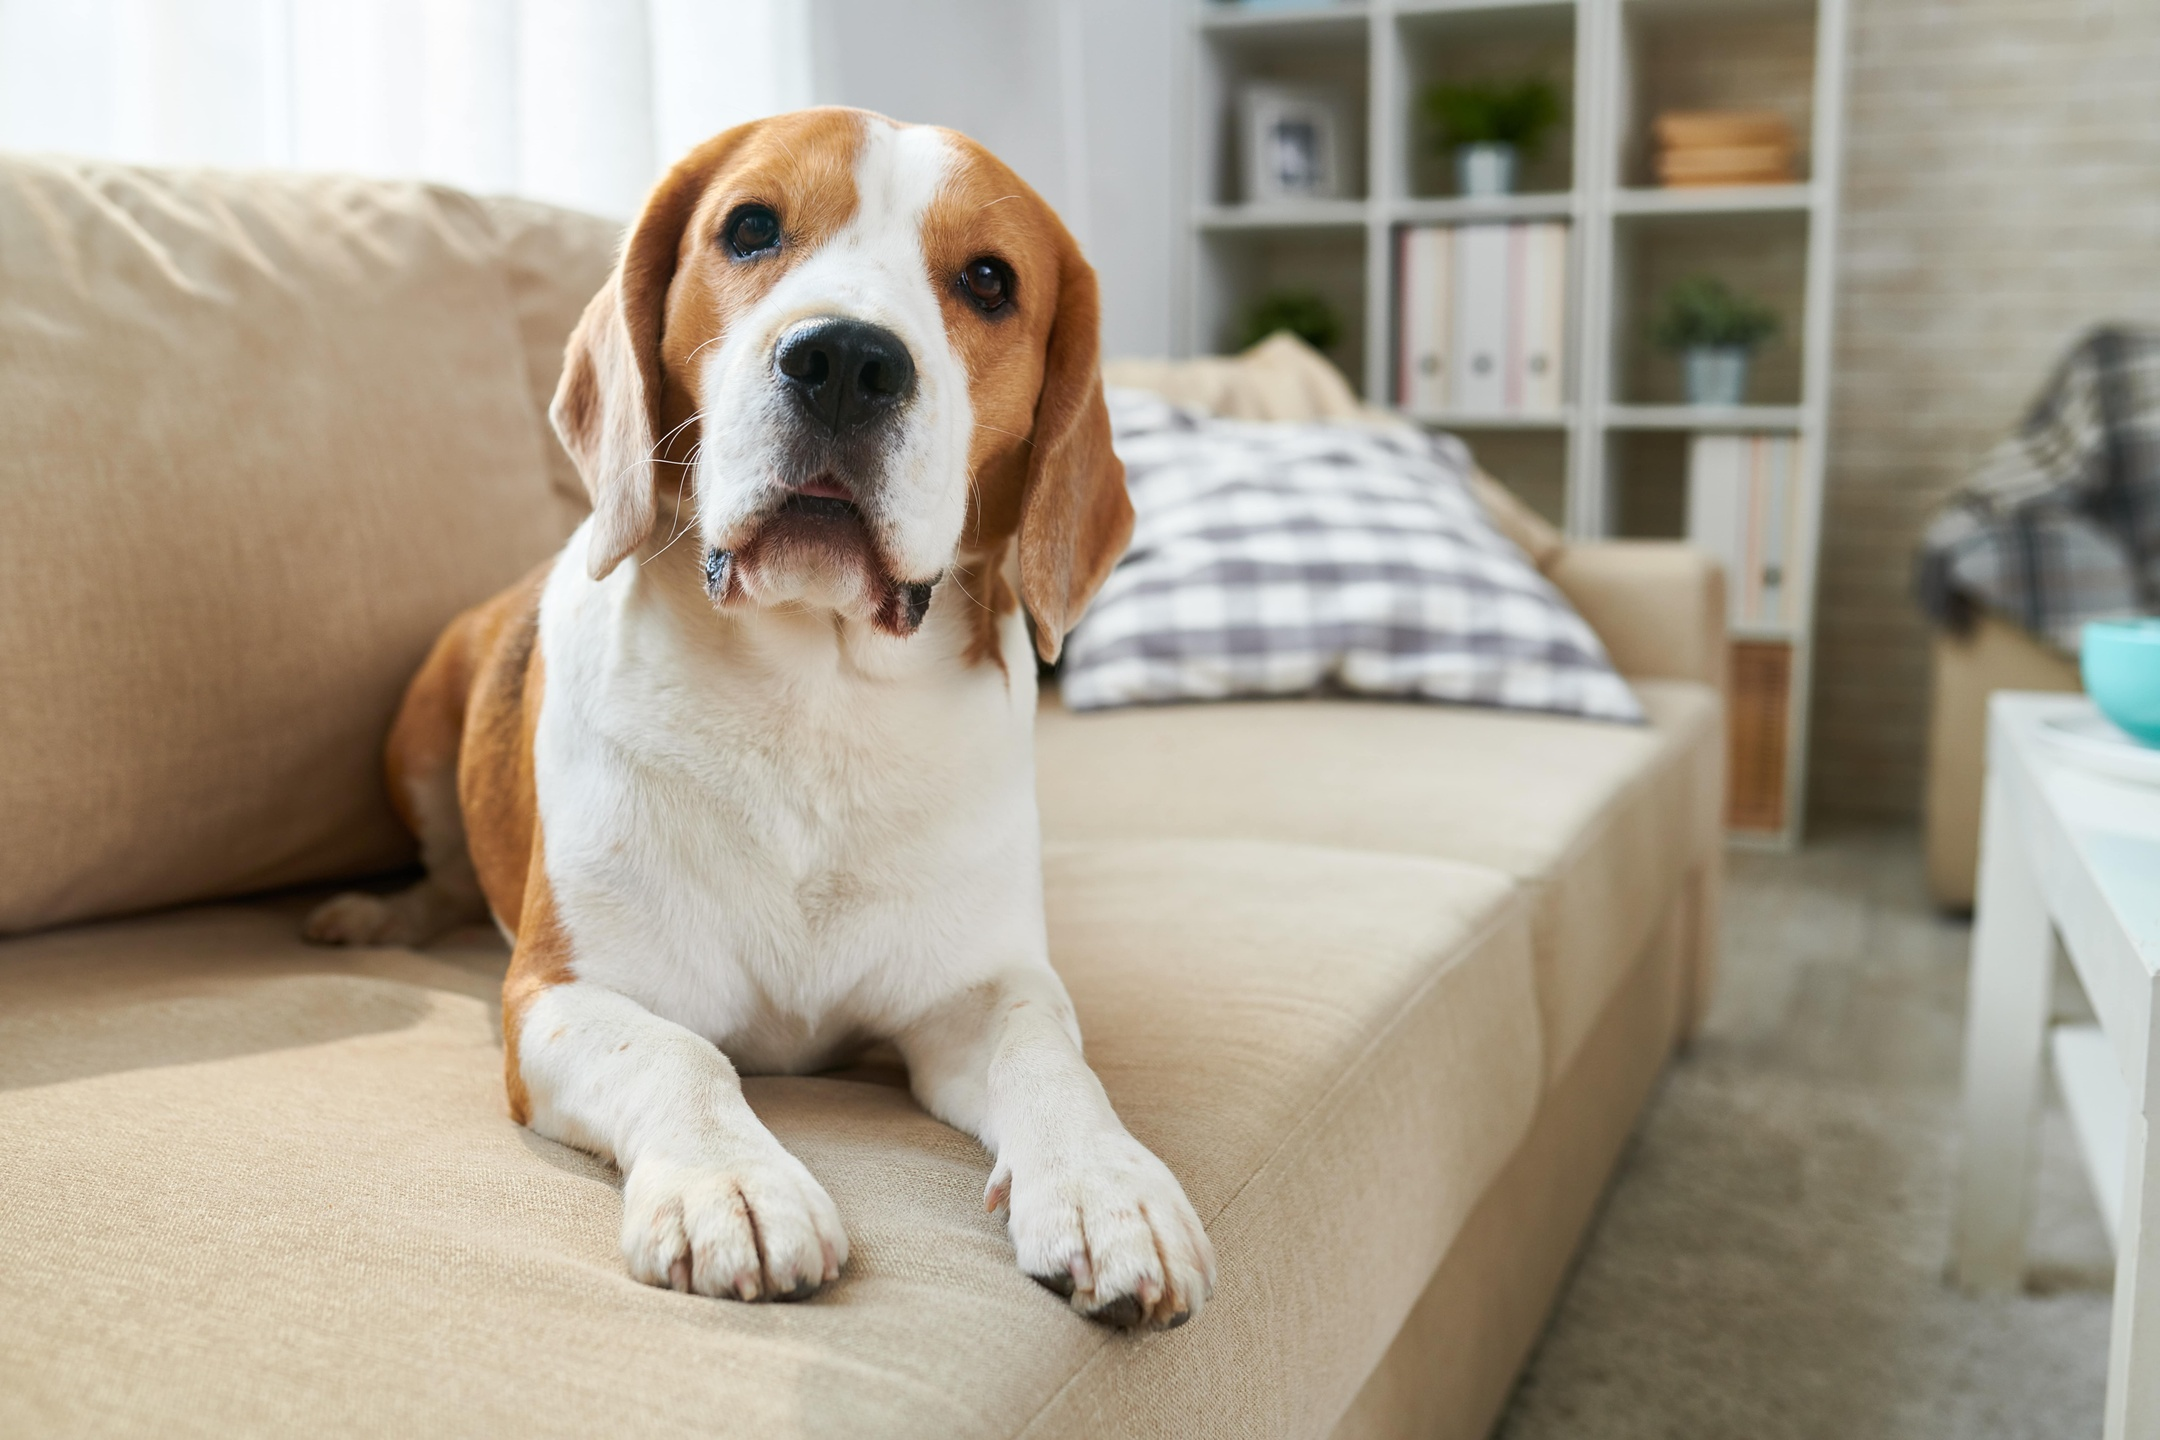 Dog Training and Dog-friendly Outdoor Activities in Fort Worth, Texas